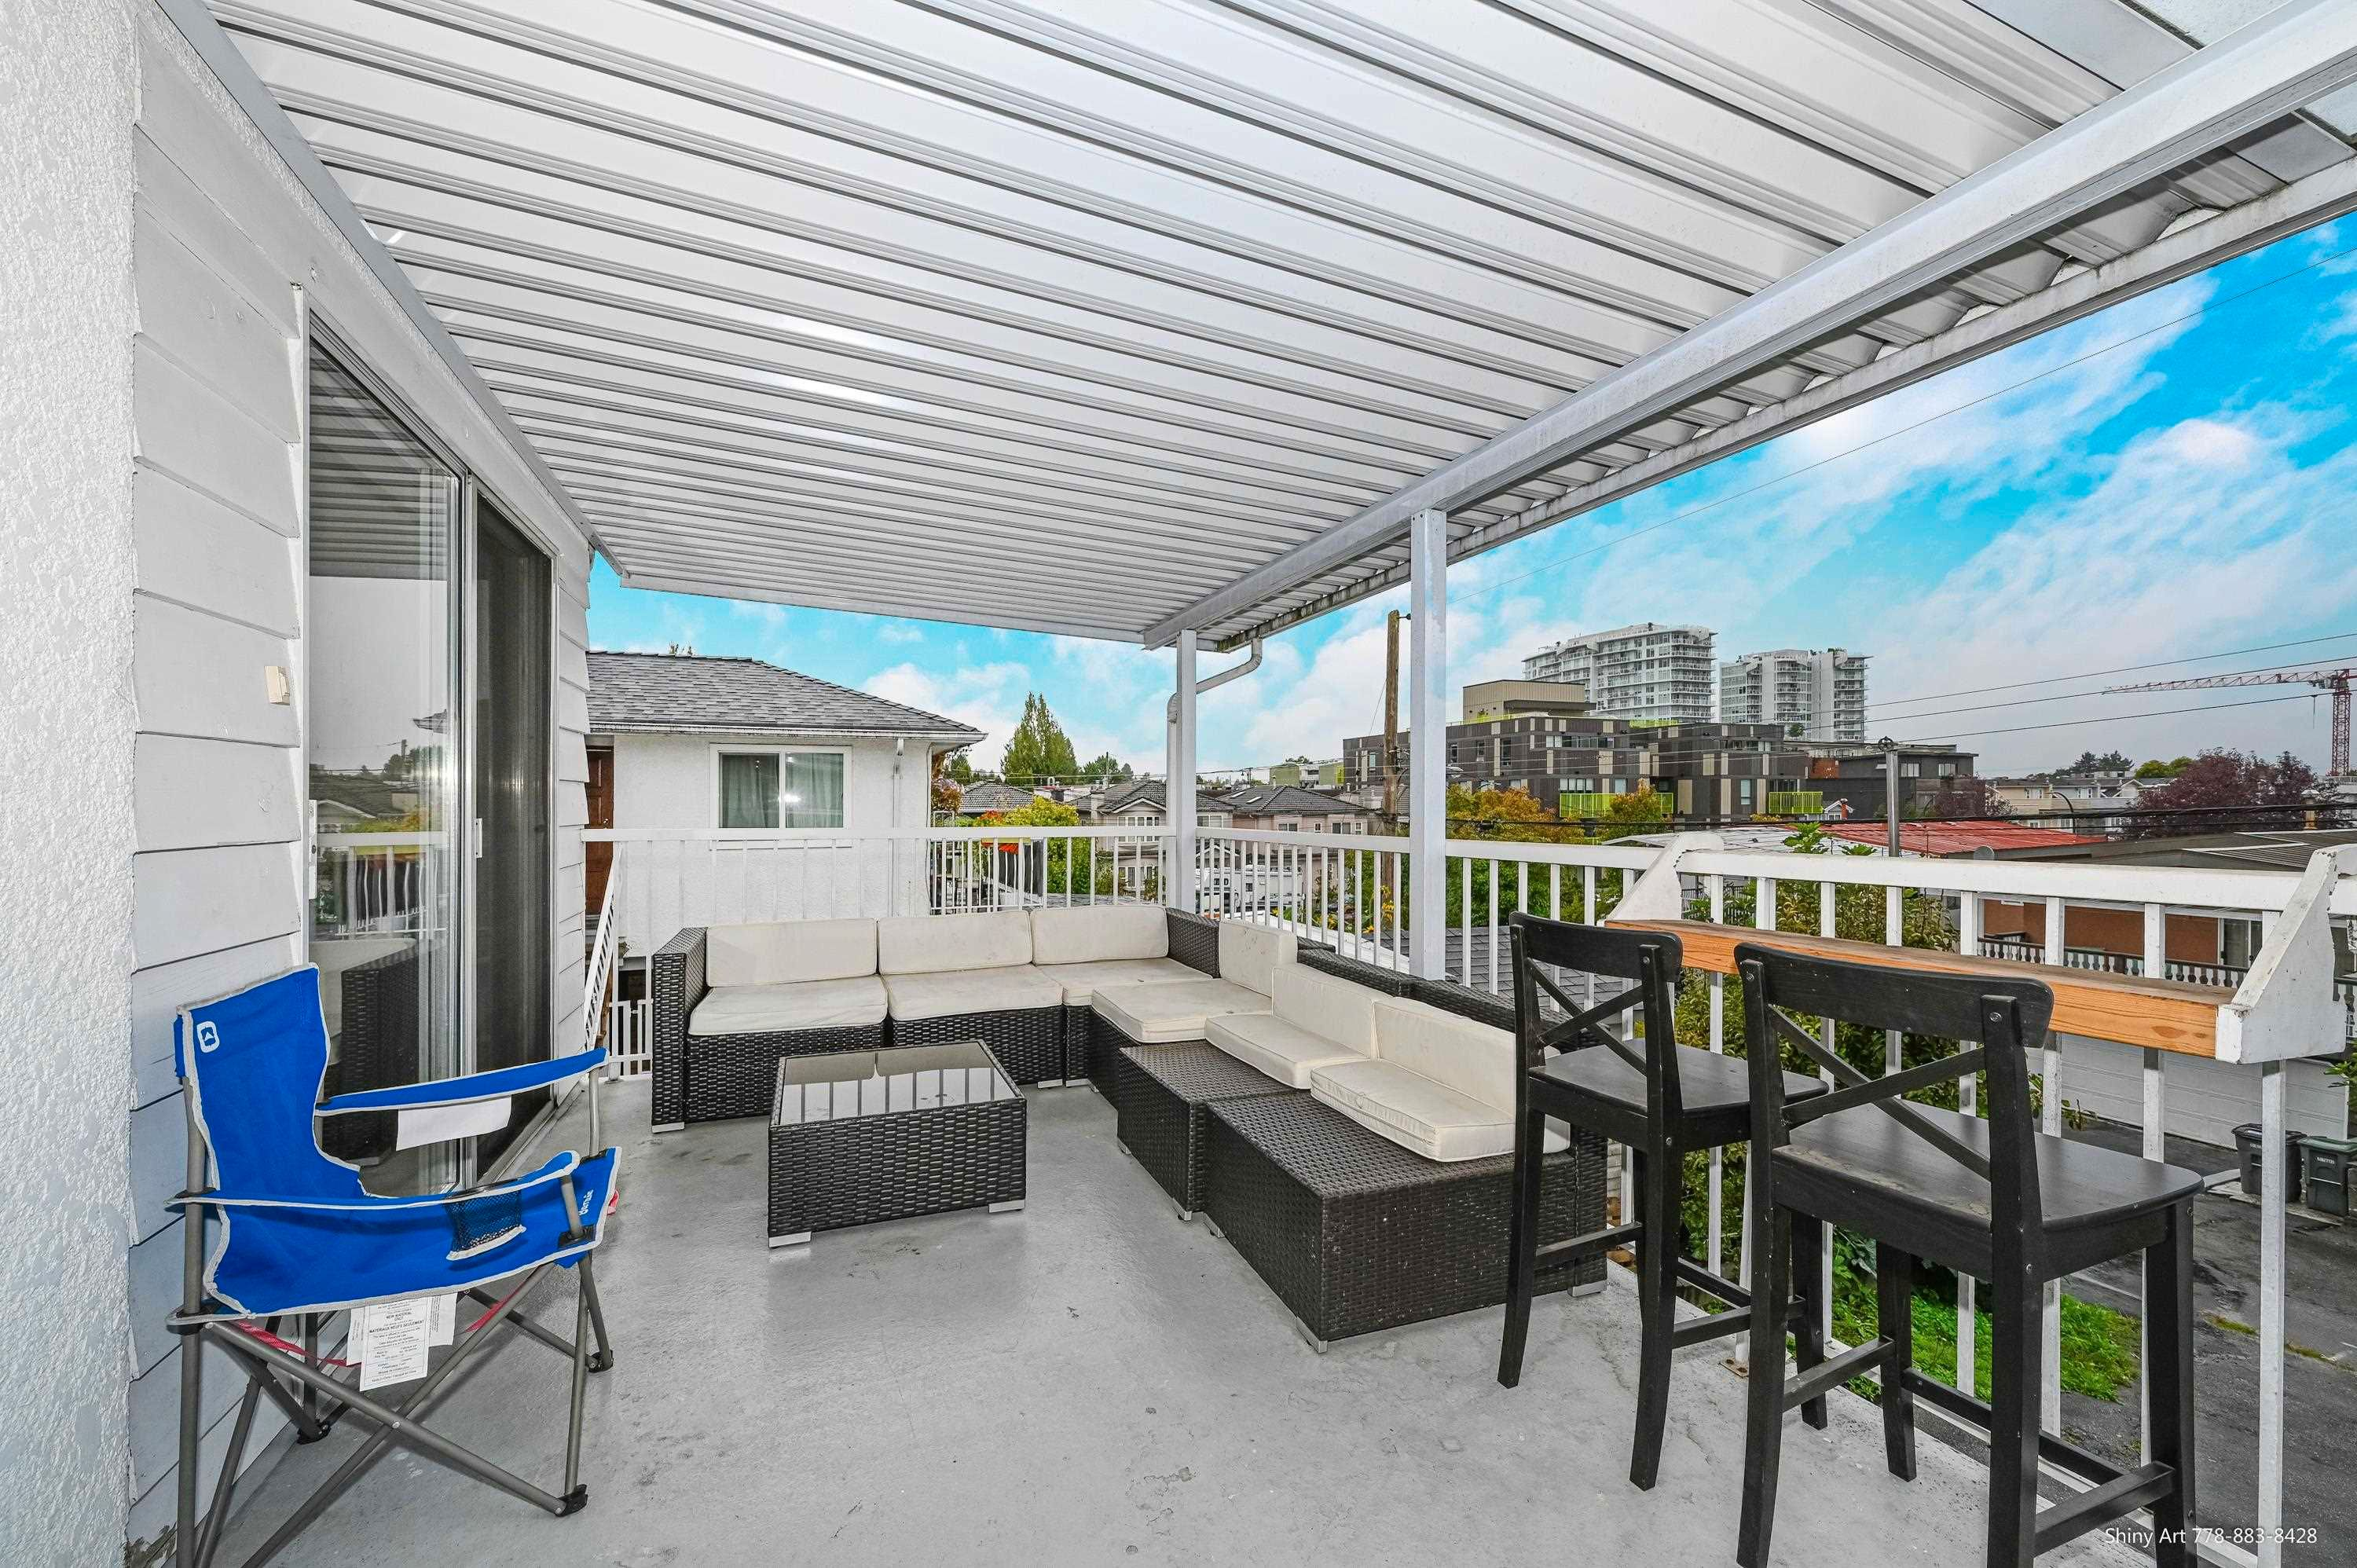 Main Photo: 4675 NANAIMO Street in Vancouver: Victoria VE Multifamily for sale (Vancouver East)  : MLS®# R2617291